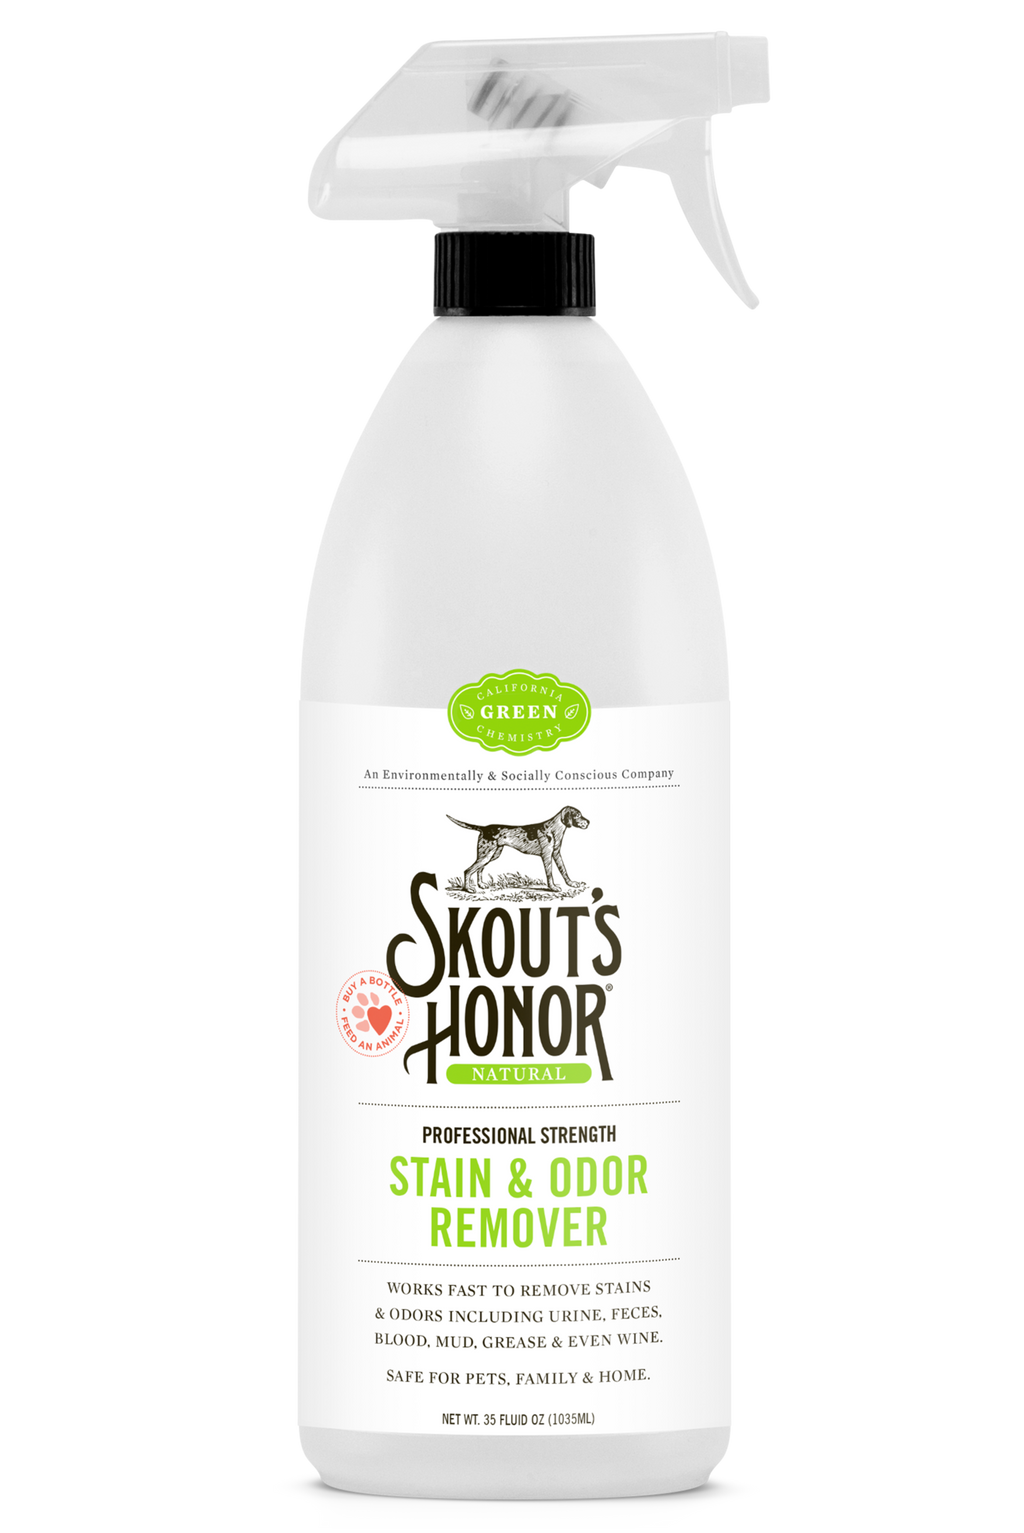 skouts honor stain and odour remover